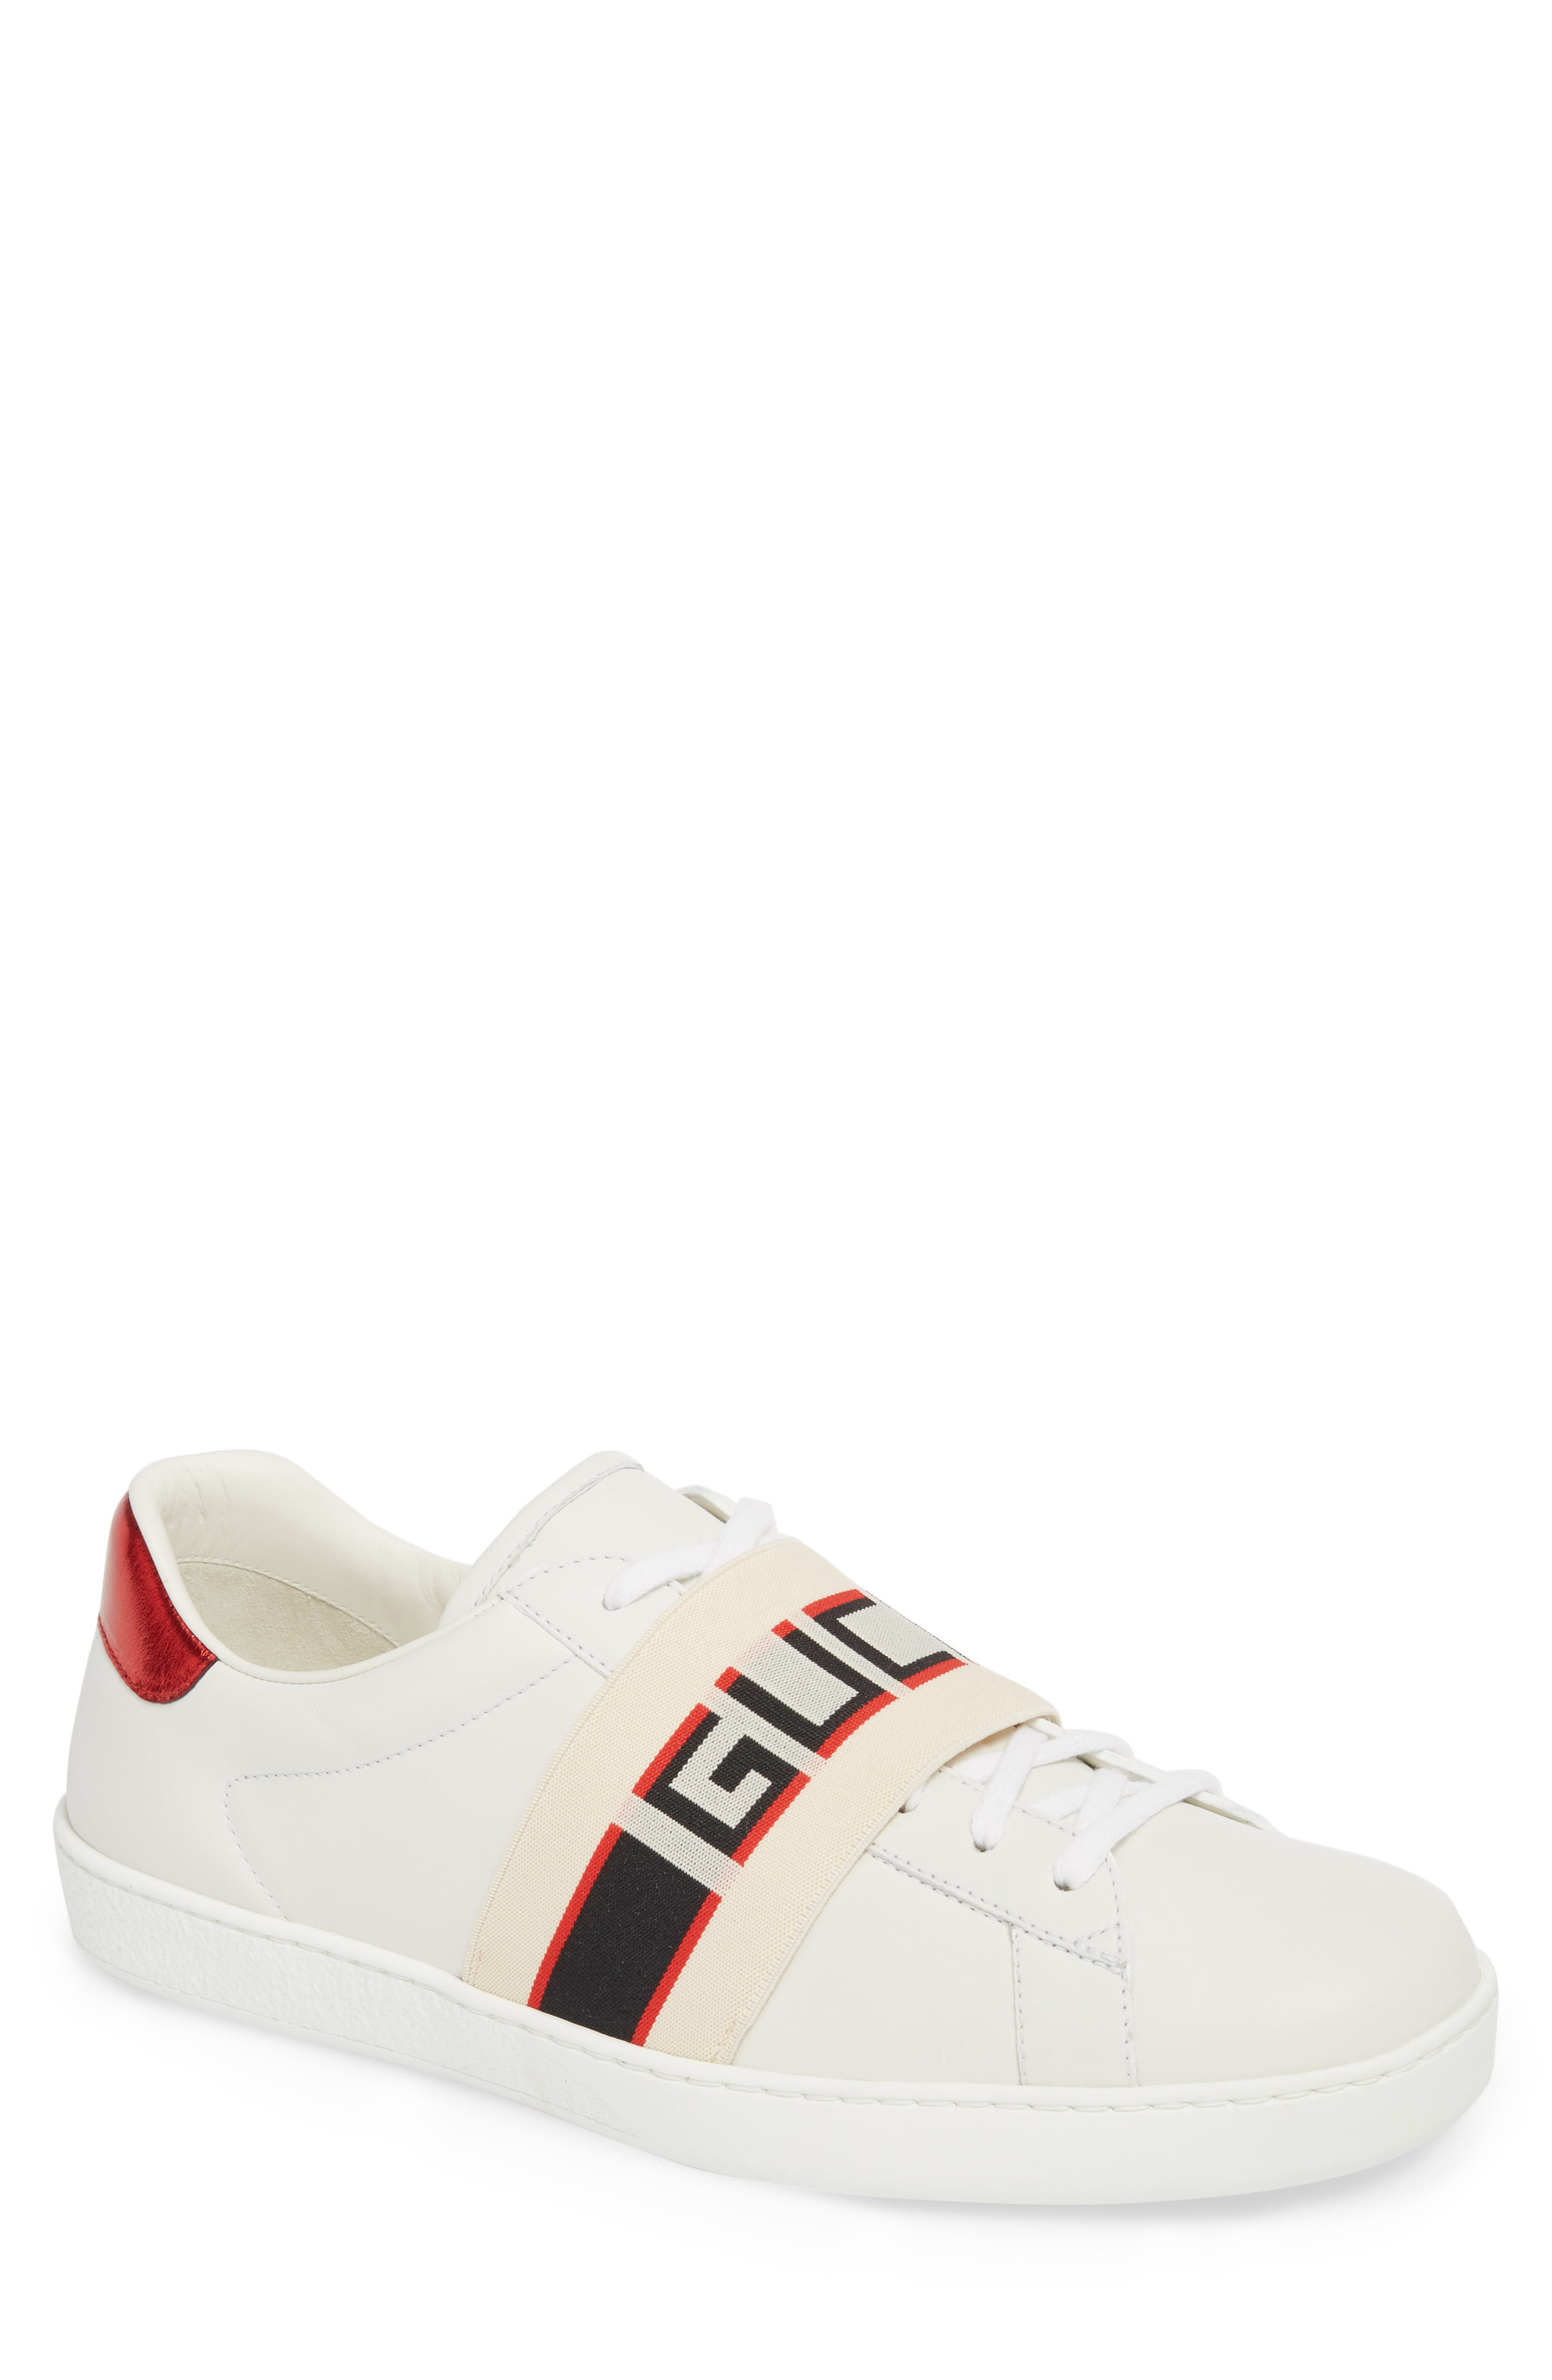 Men's Gucci New Ace Stripe Leather Sneaker, Size 6US / 5UK – White